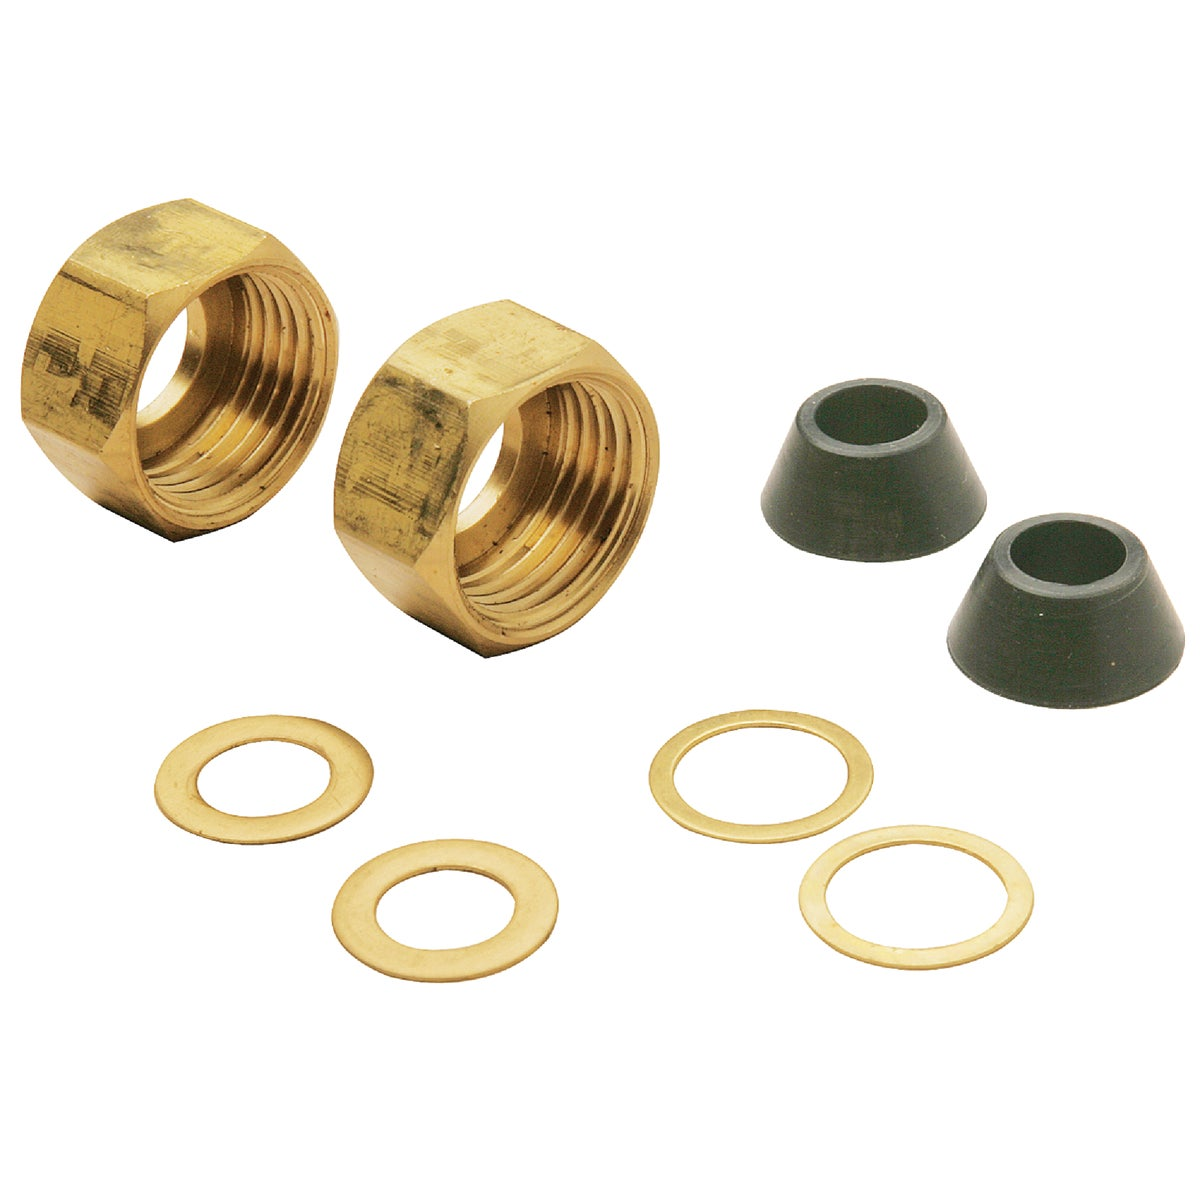 FAUCET SUPPLY KIT